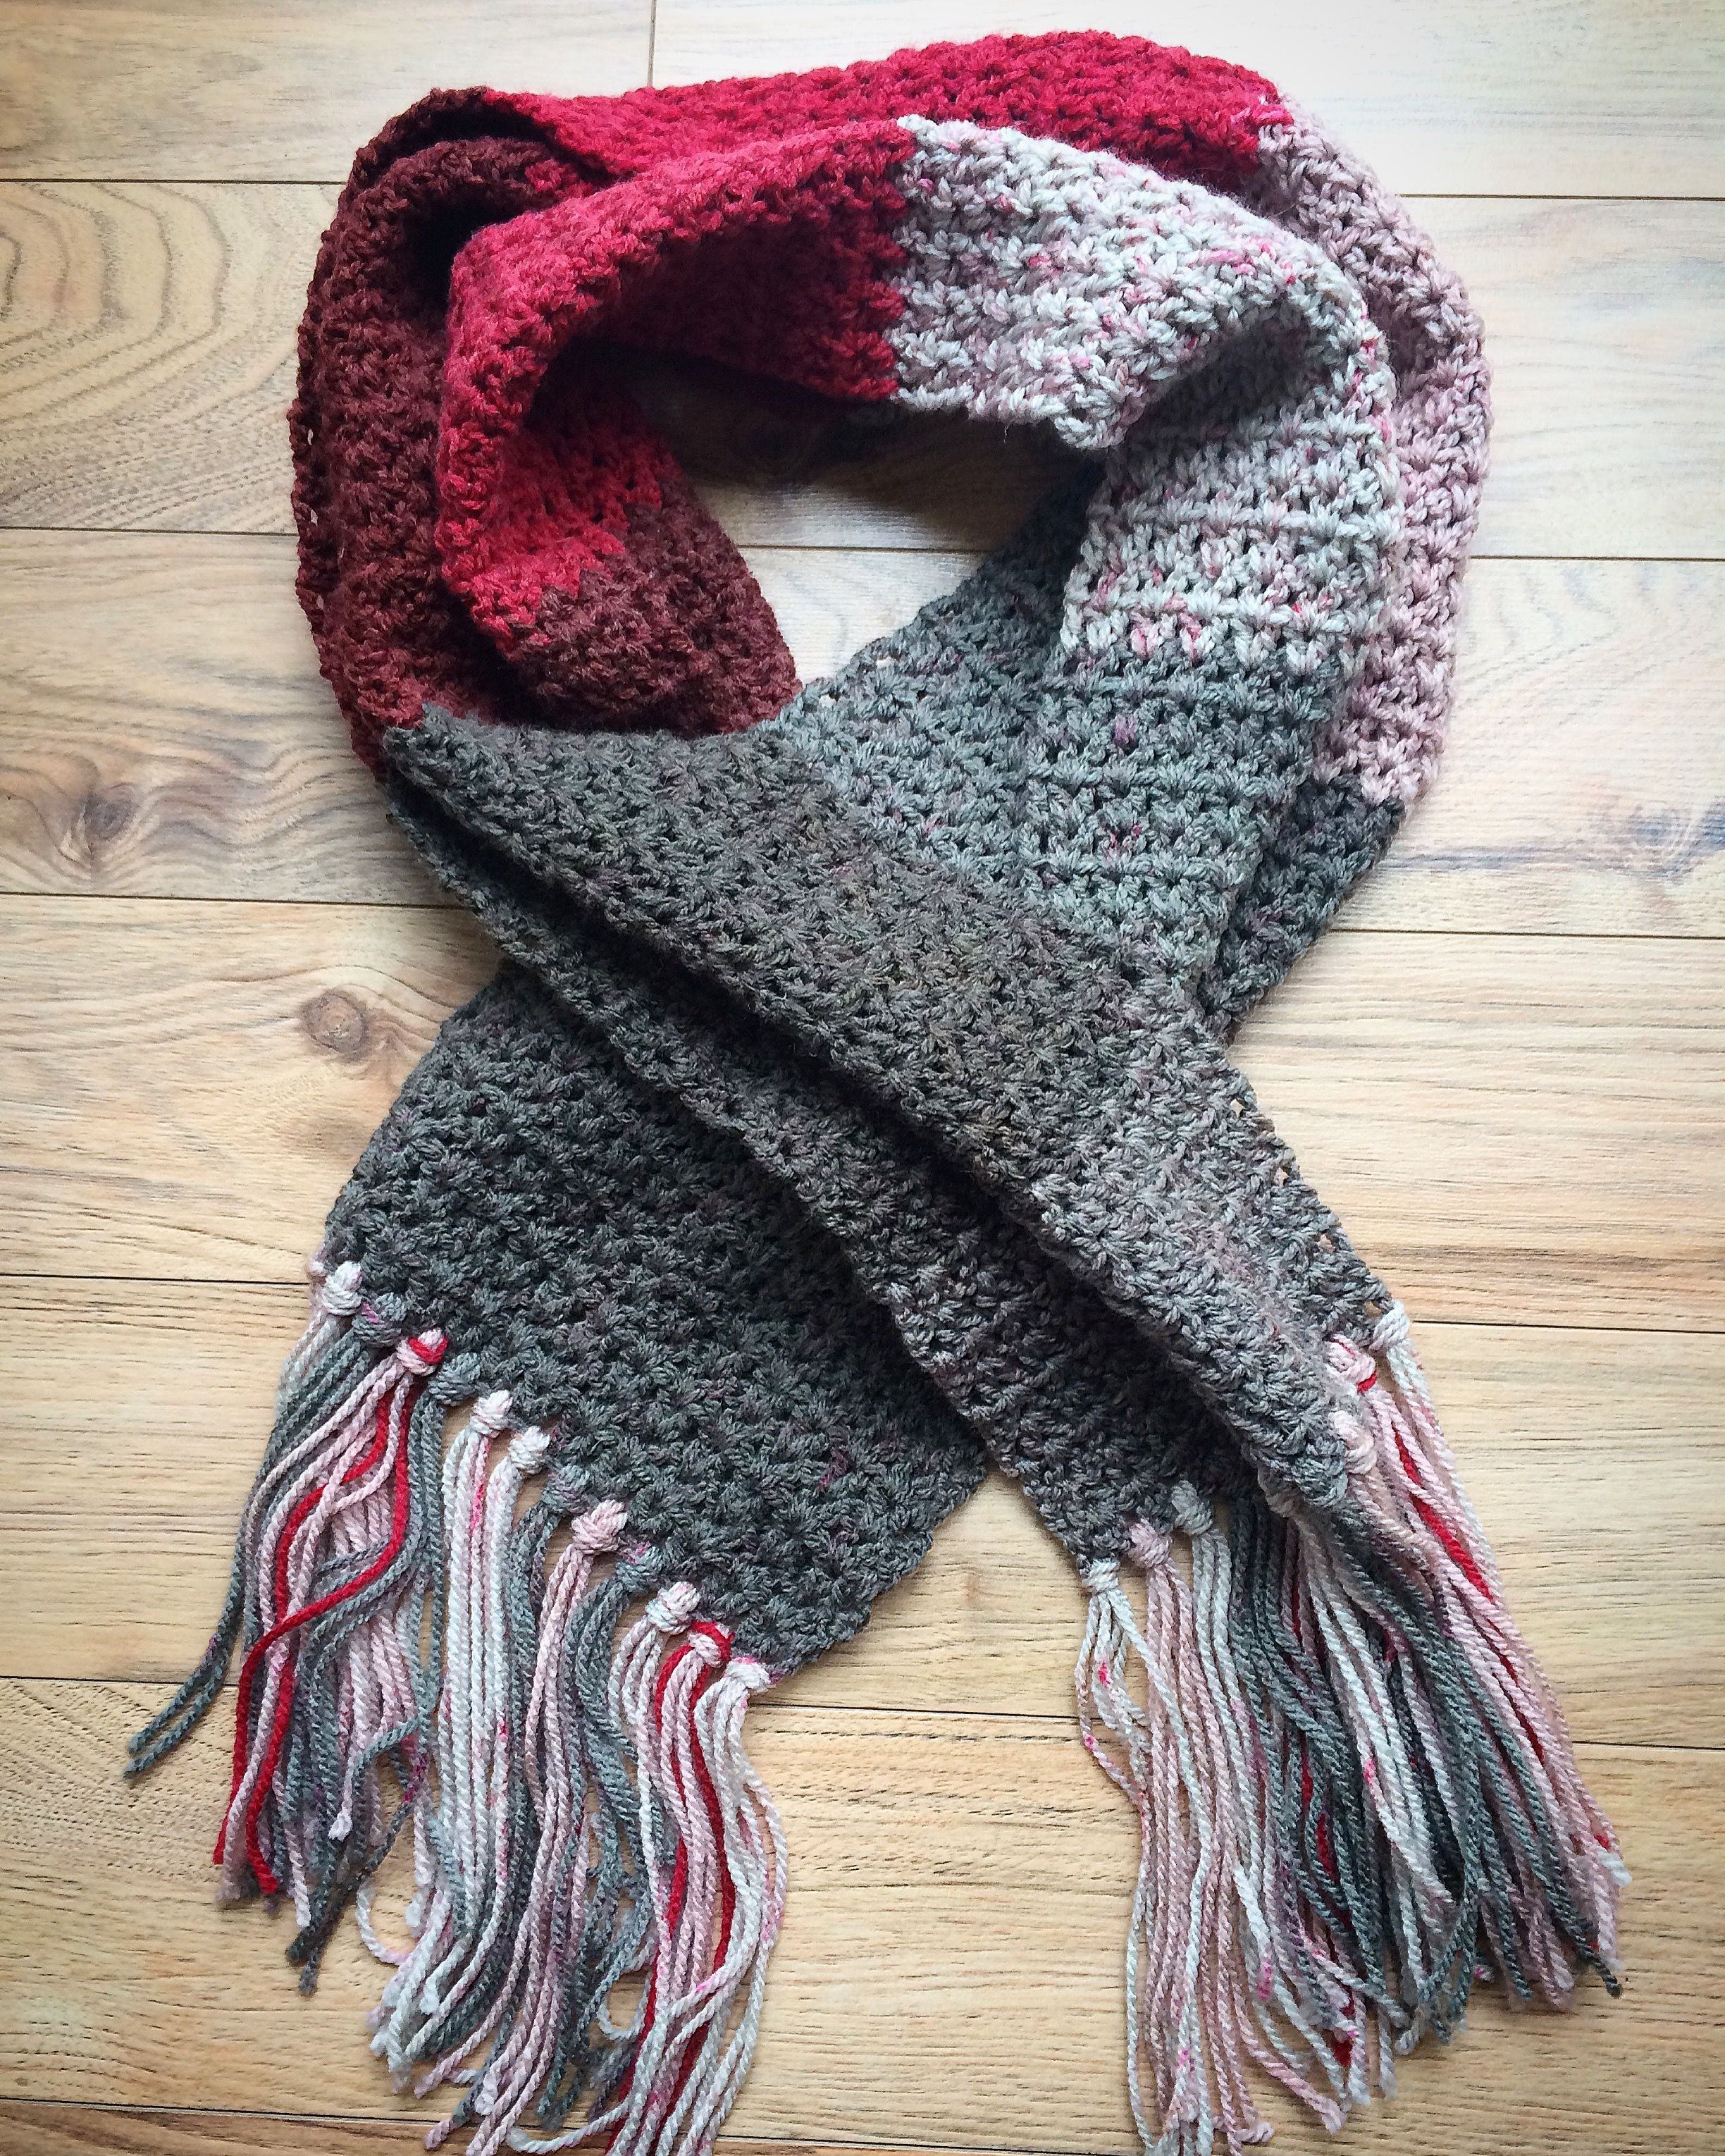 Beautiful Simple Crochet Scarf Using Caron Cakes ️ Crochet Caron Patterns Of Charming 48 Pics Caron Patterns